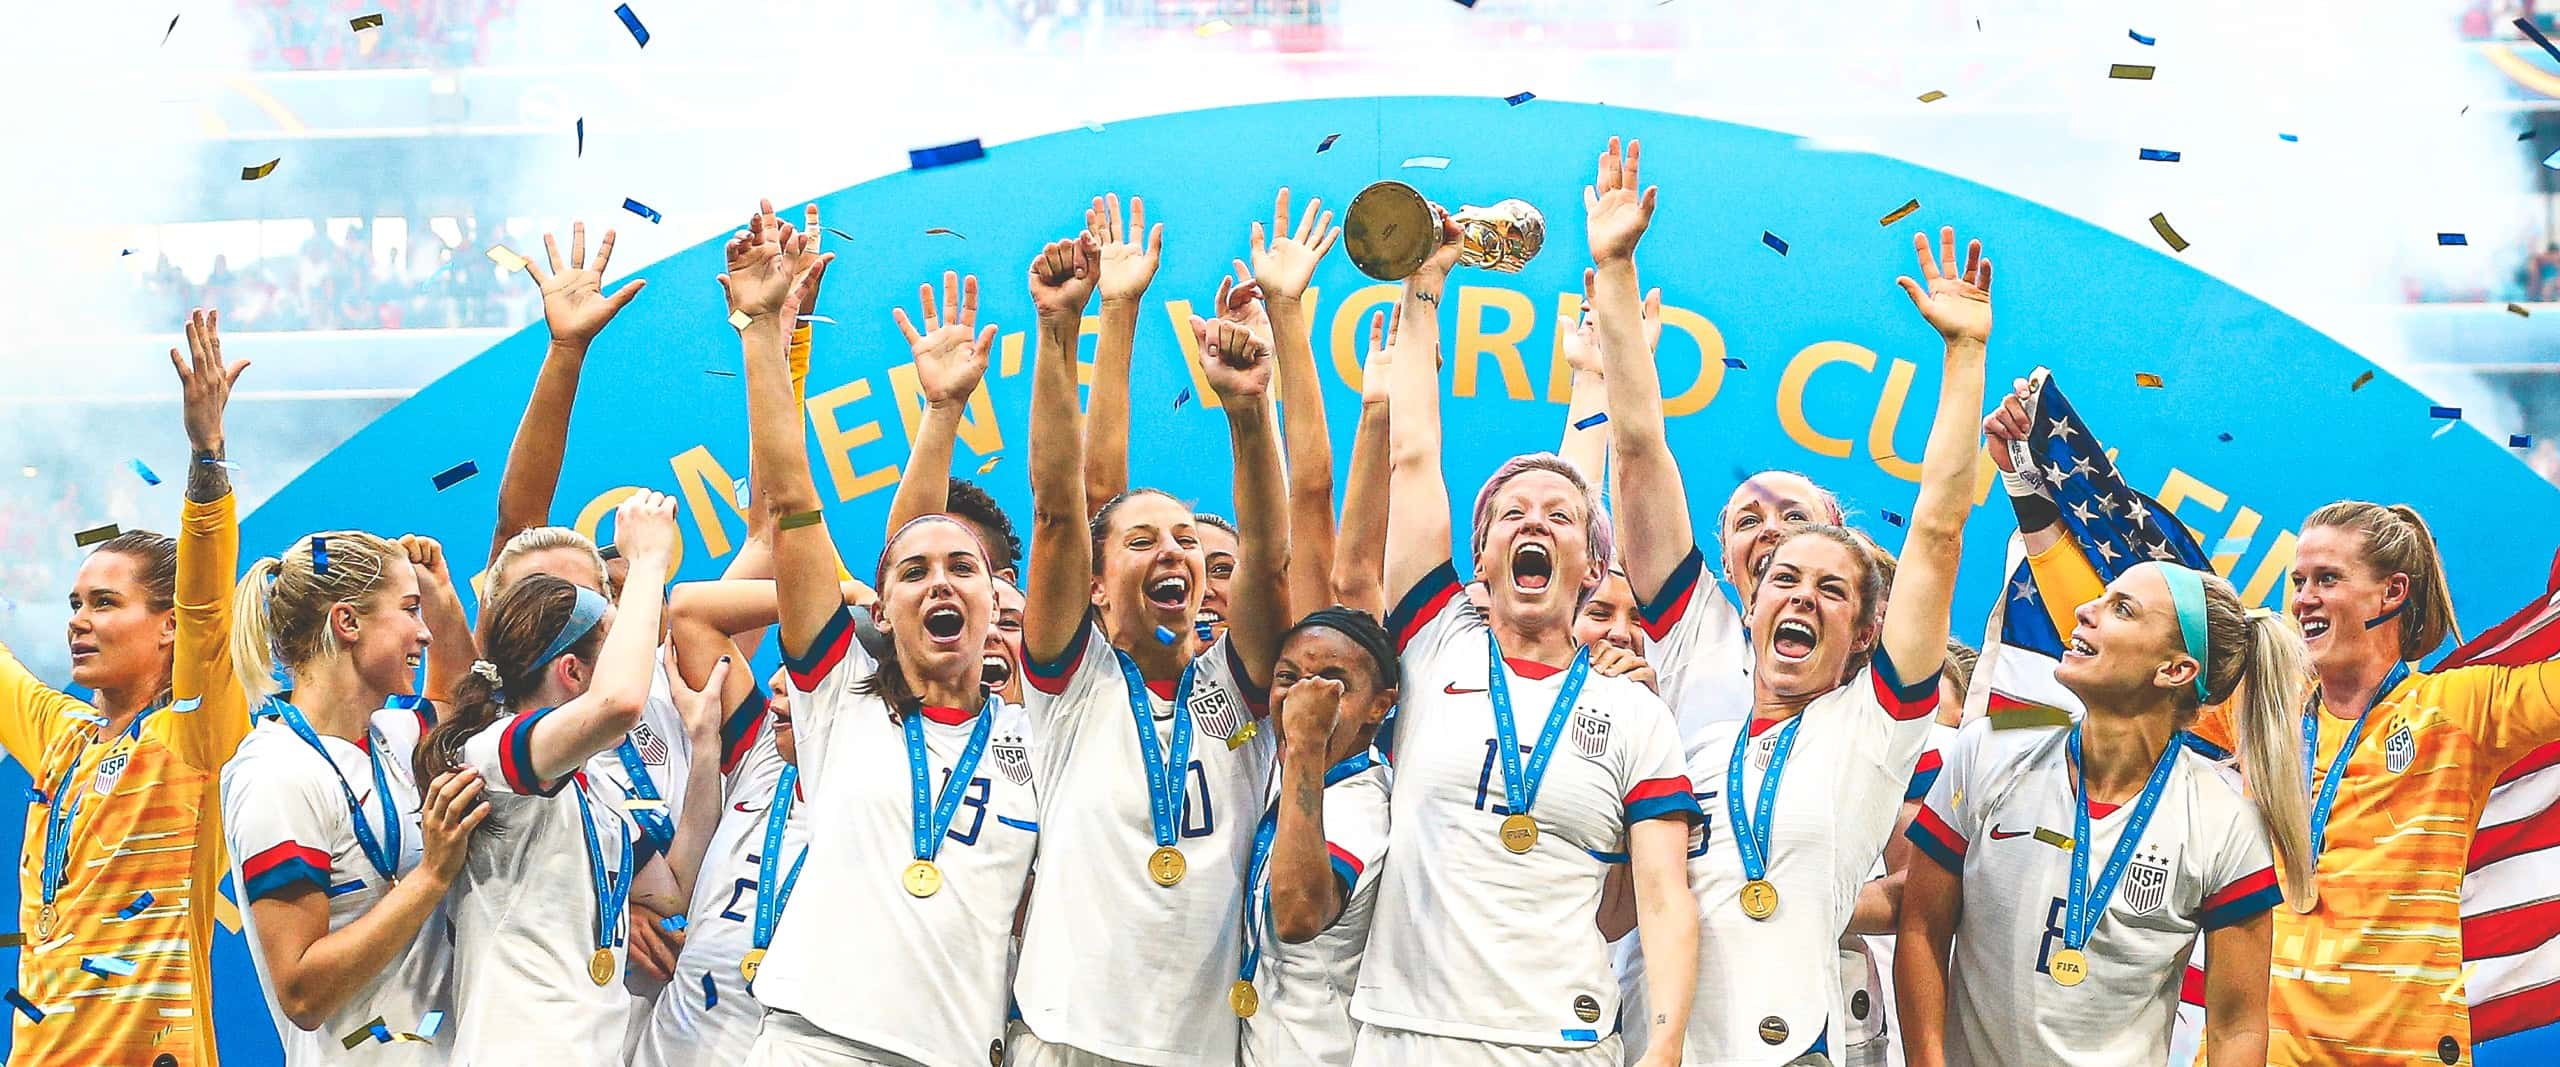 USWNT 2019 World Cup Trophy Presentation (linked from USSoccer.com)